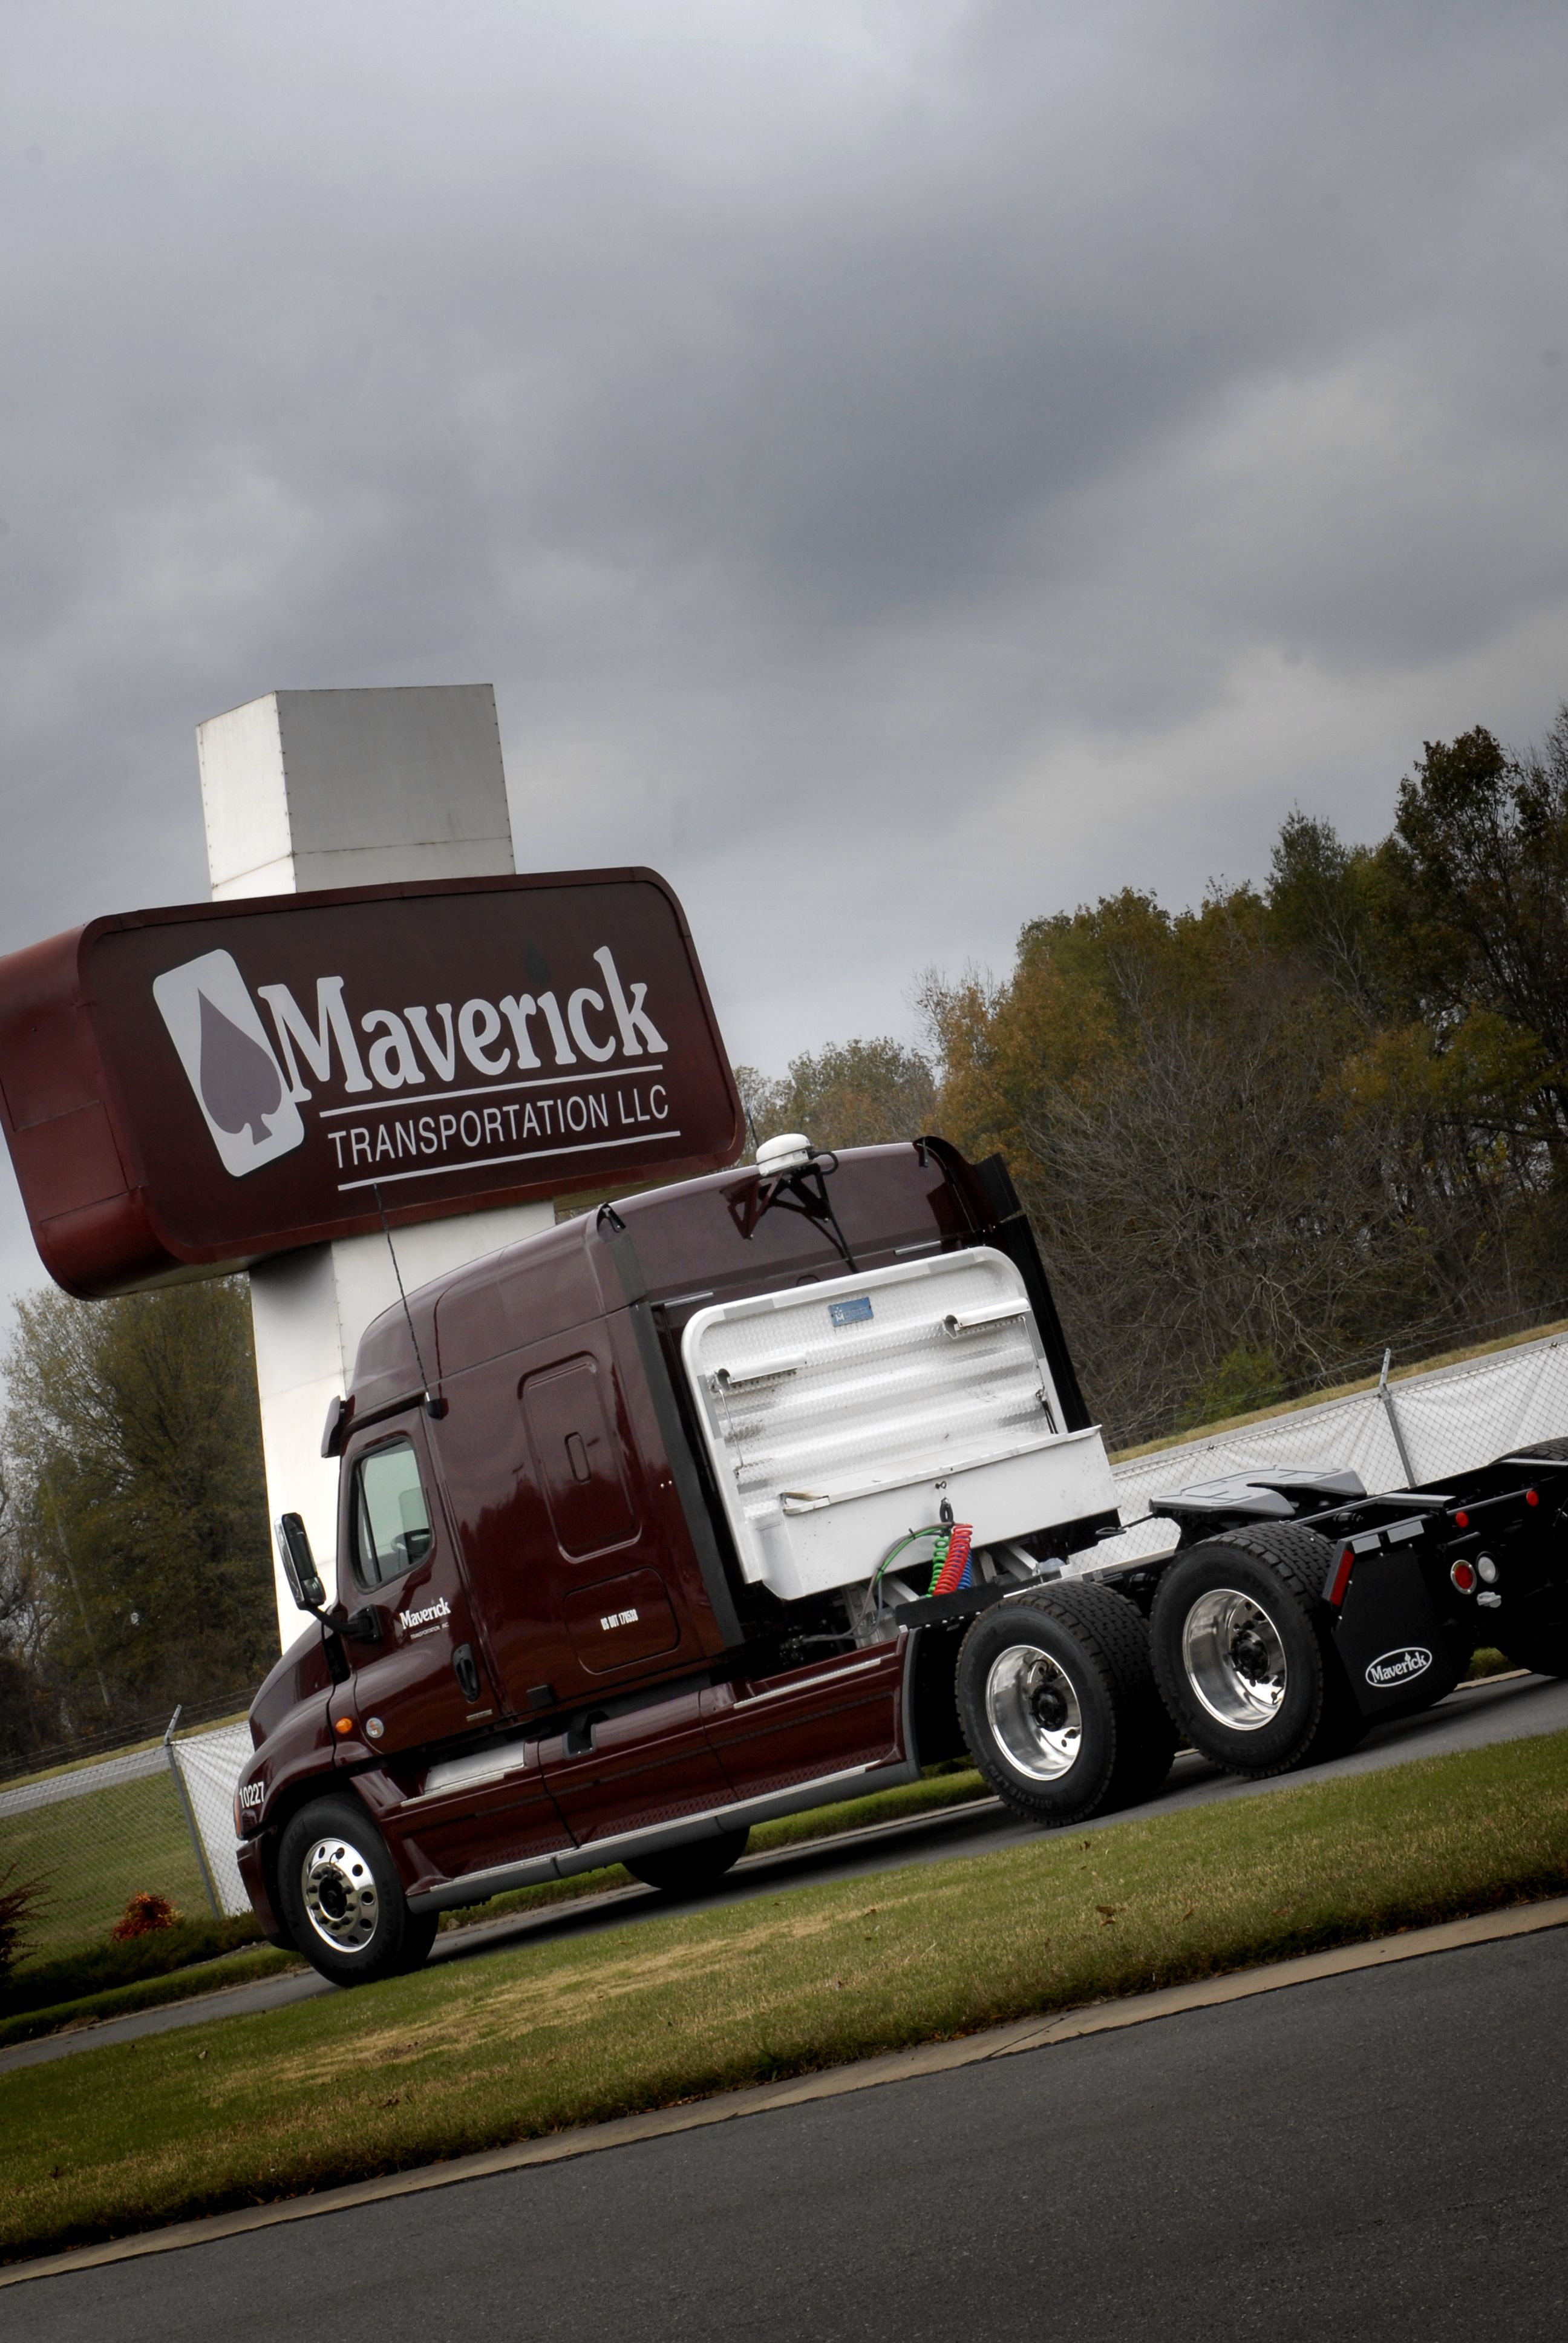 Williams started Maverick Transportation with just one truck